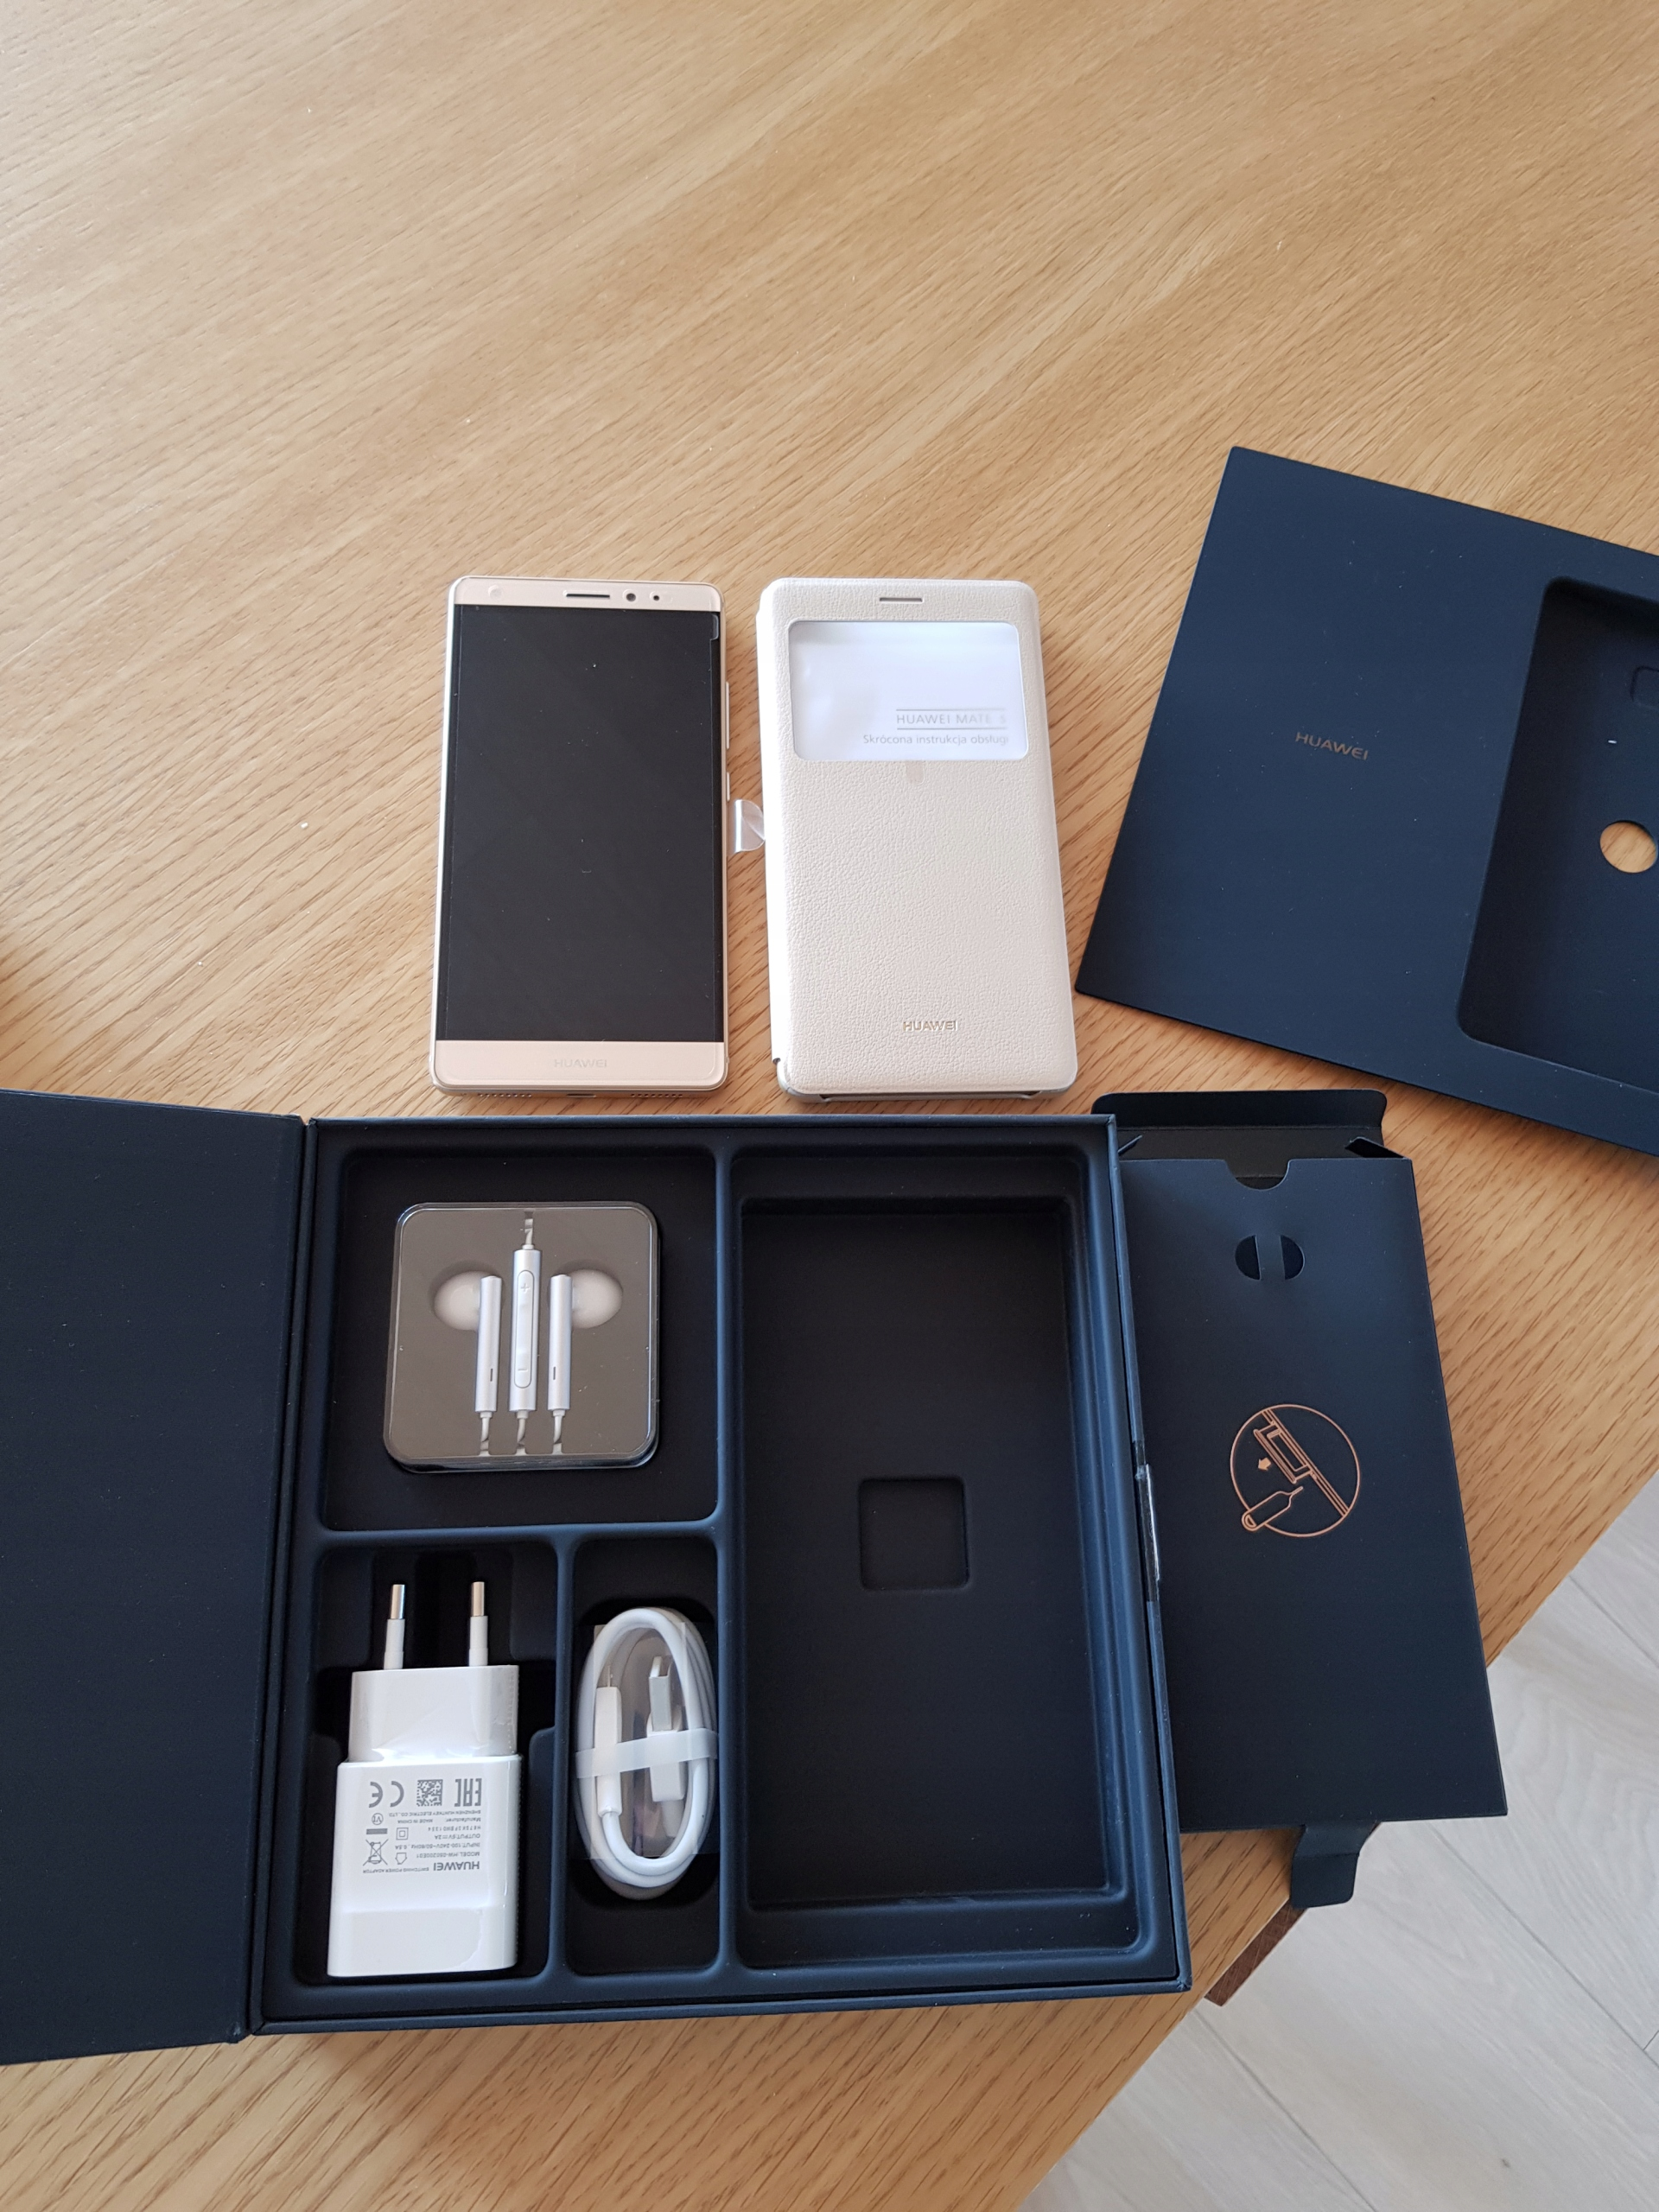 Nowy Huawei Mate S Limited Edition